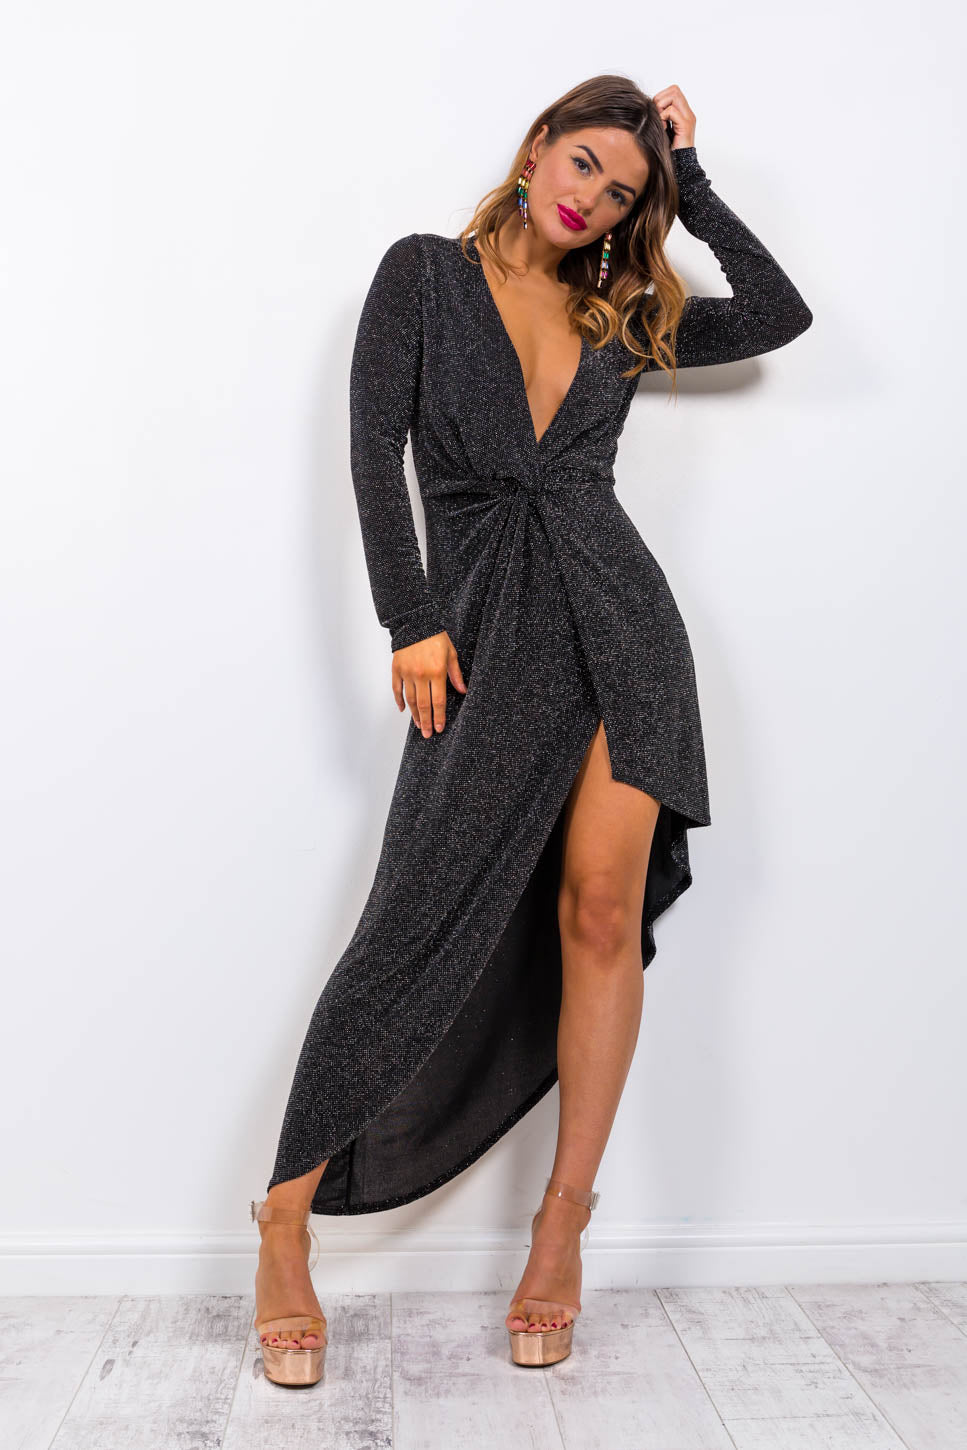 https://cdn.shopify.com/s/files/1/0062/6661/7925/files/product-video-shes_a_lady-dress-in-black.mp4?5988